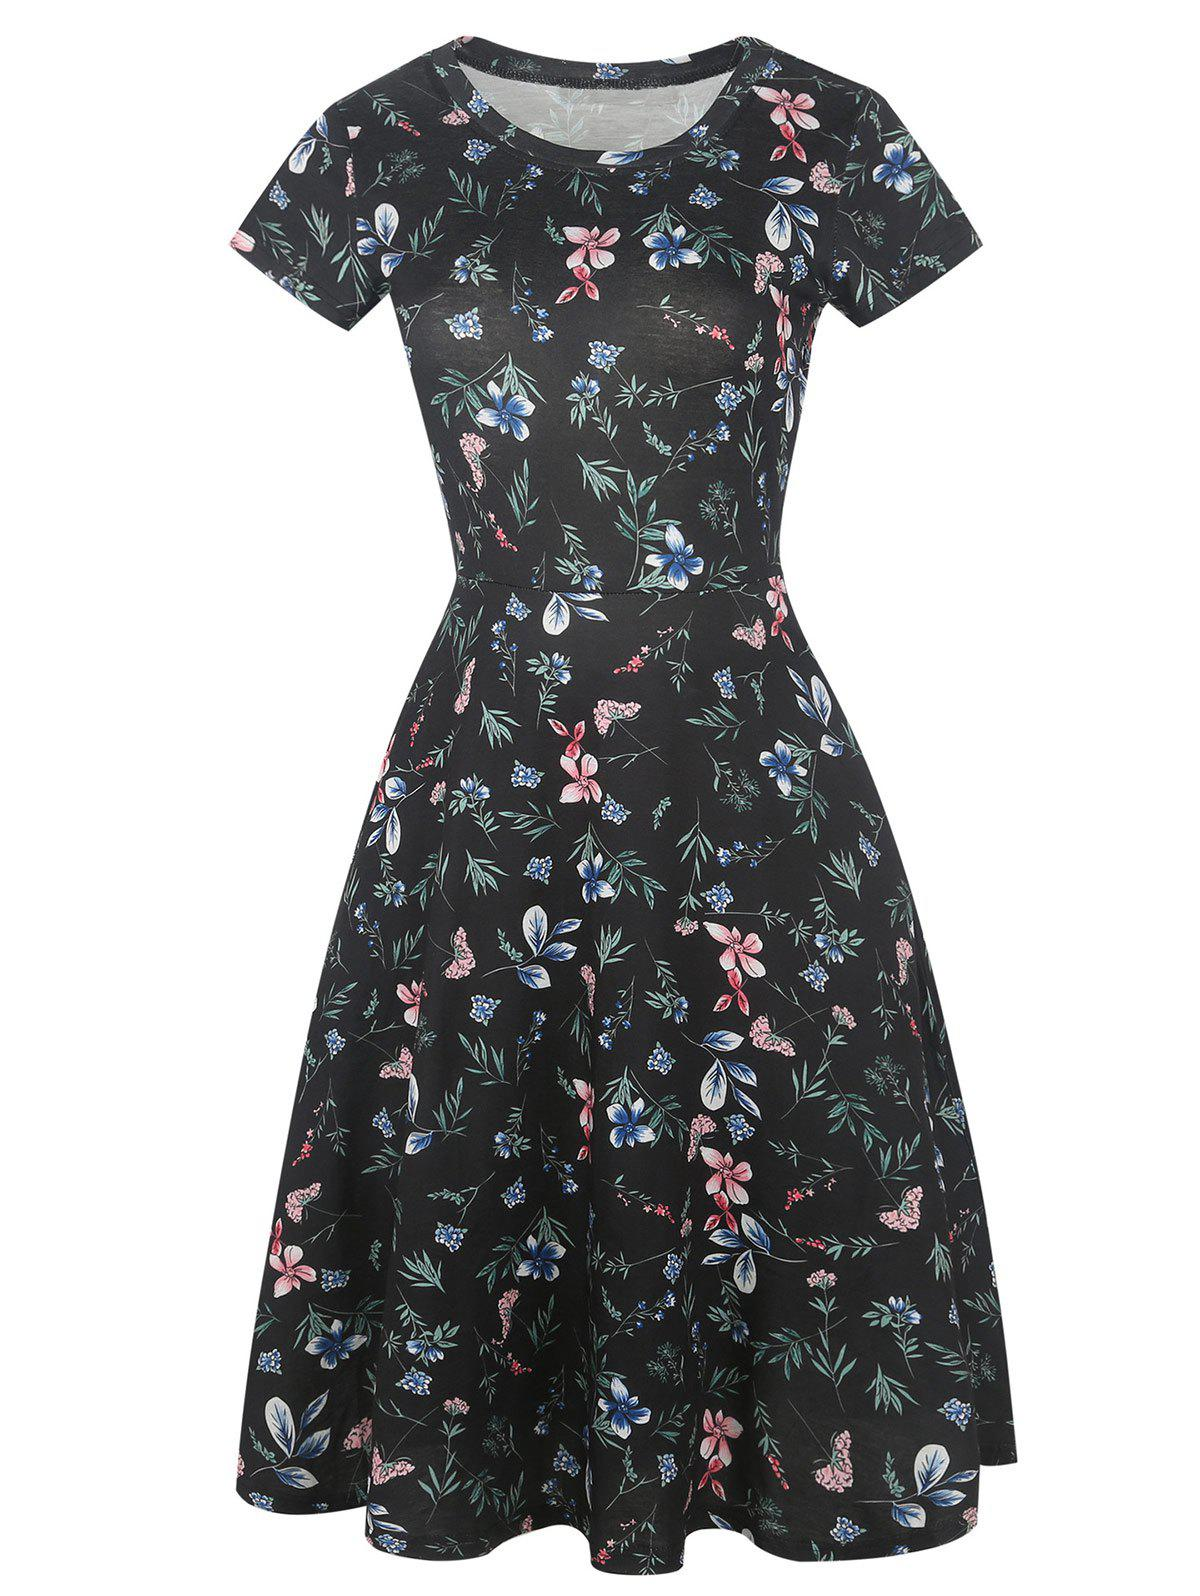 Cheap Floral Print Short Sleeve Fit and Flare Dress